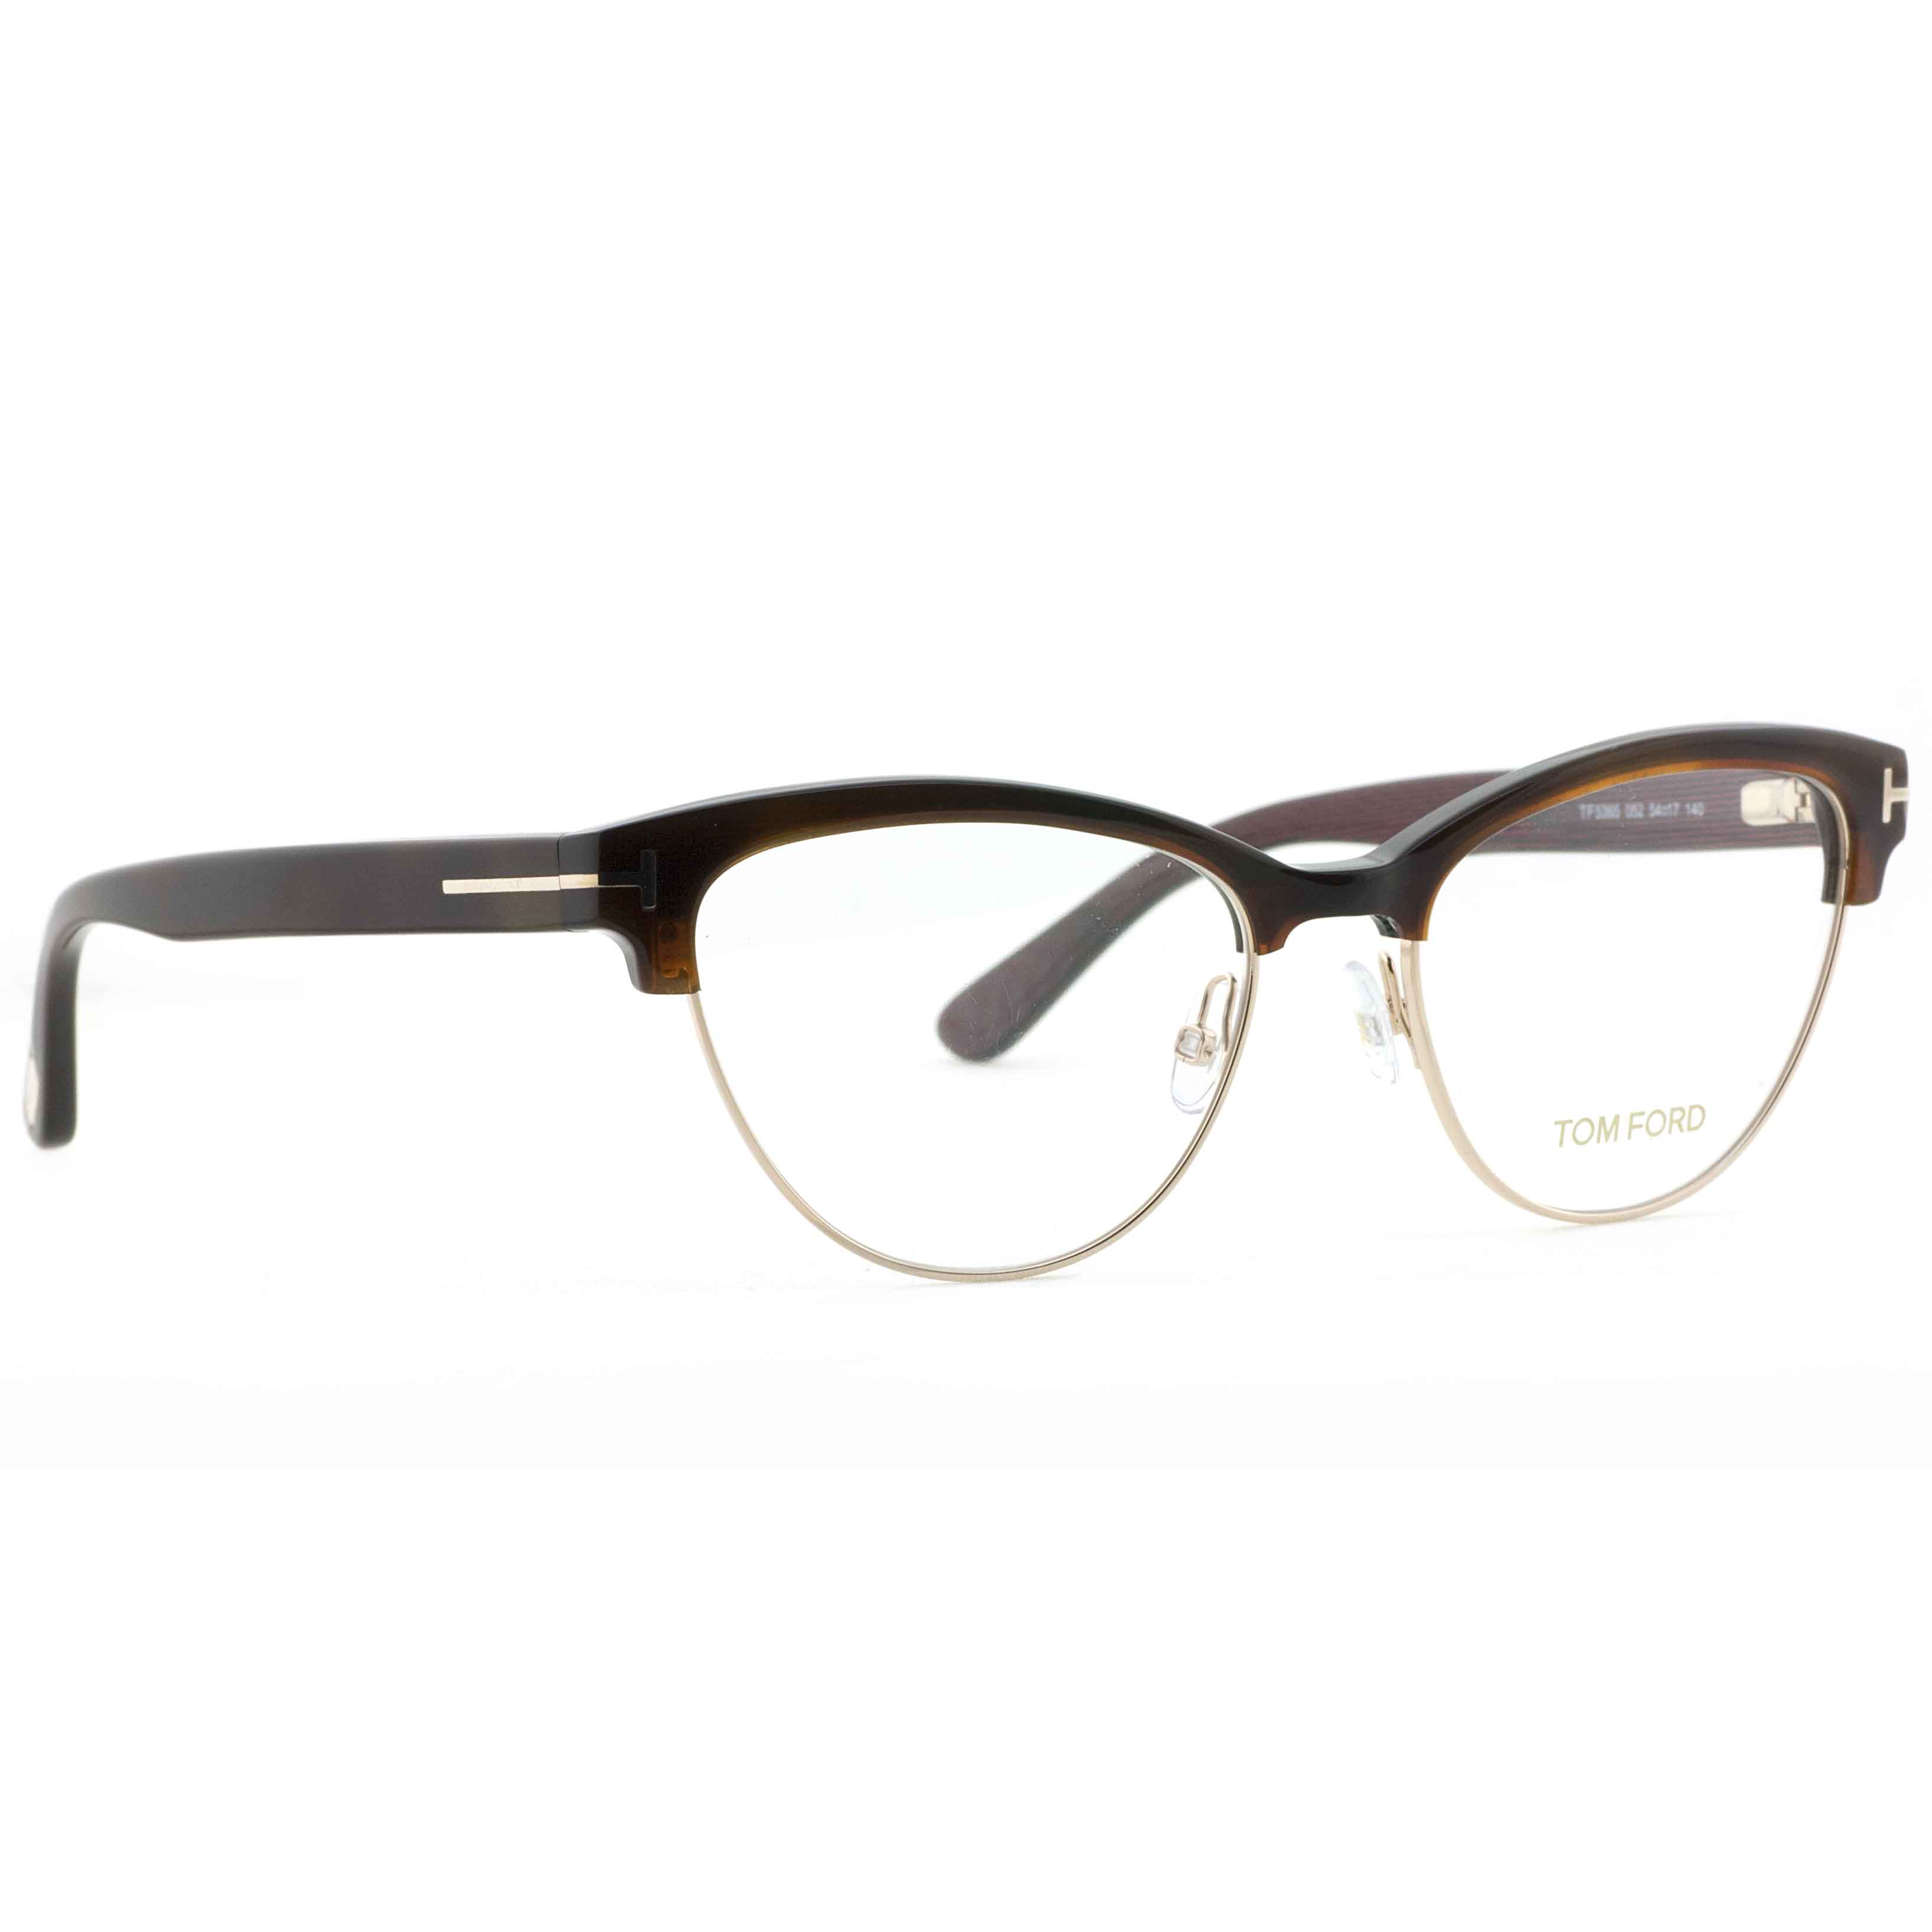 6a743e2145 Tom Ford TF 5365 052 54mm Havana Brown Gold Women s Cat Eye Eyeglasses -  Walmart.com